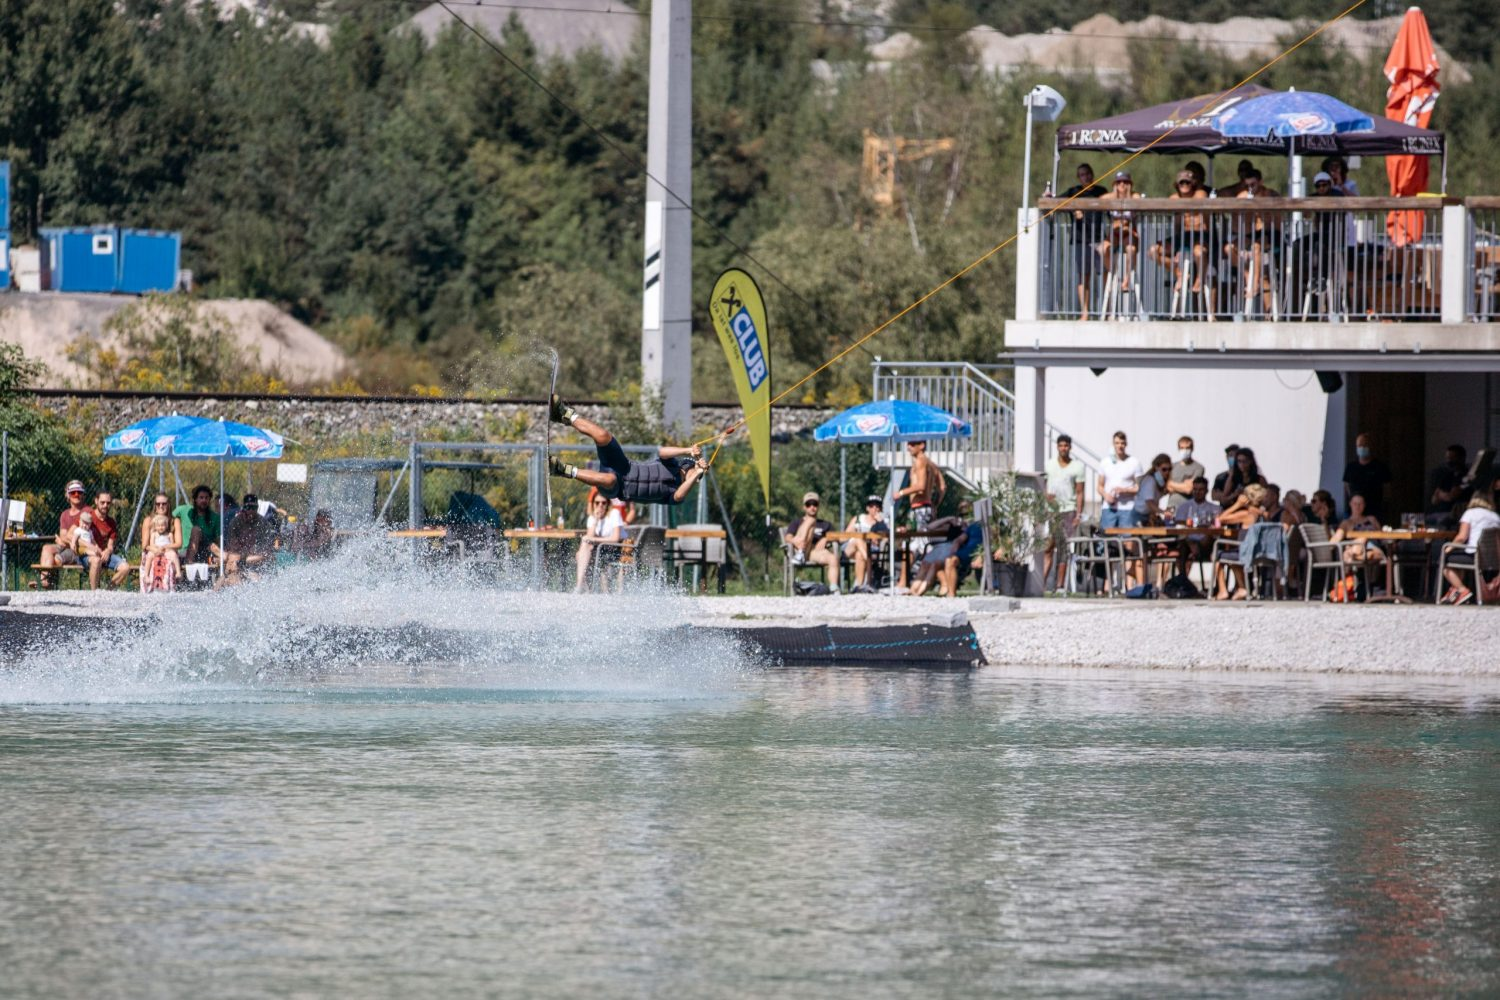 Tyrolean Wakeboard Masters - Wakeboard Event